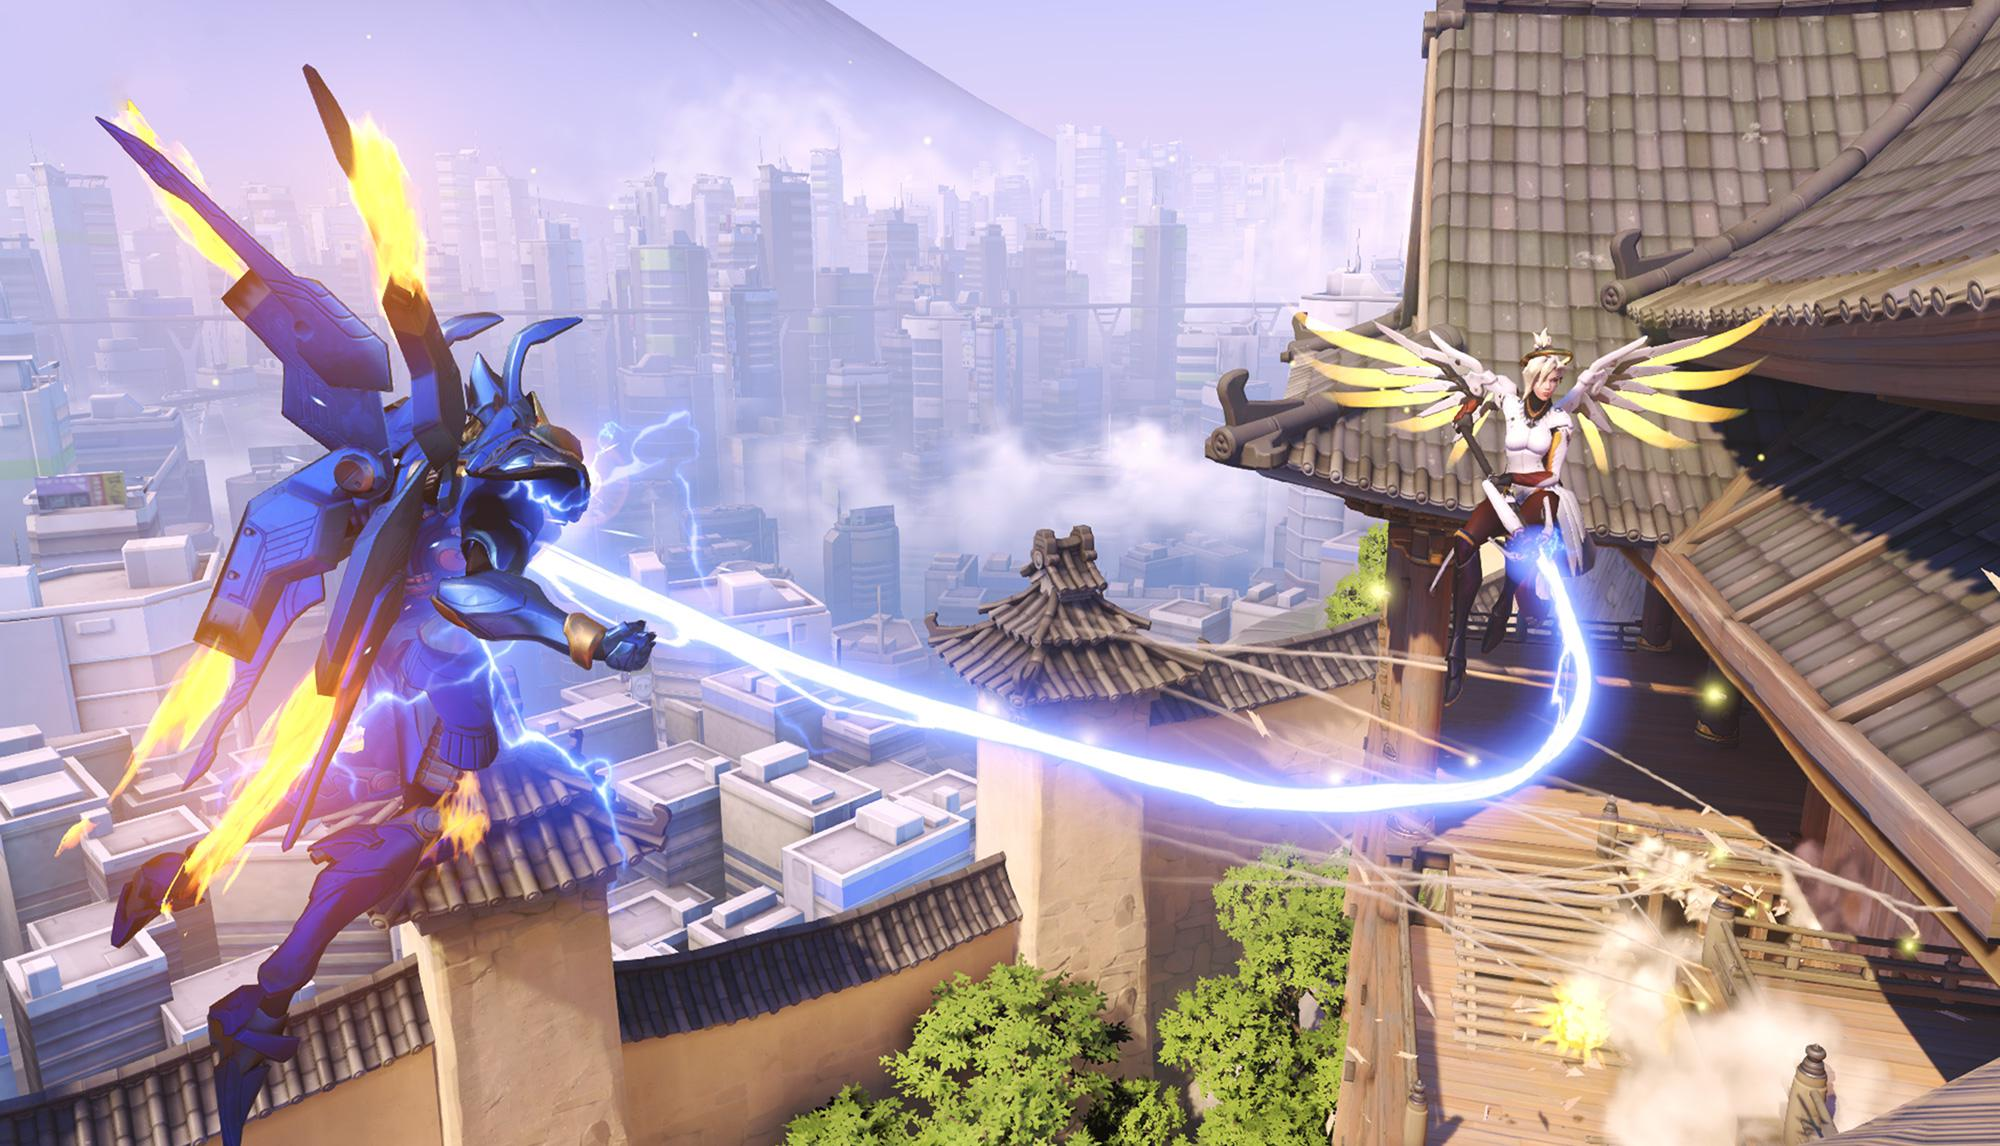 Overwatch has become recognised as an eSport, with developer Blizzard helping to fund and produce professional leagues